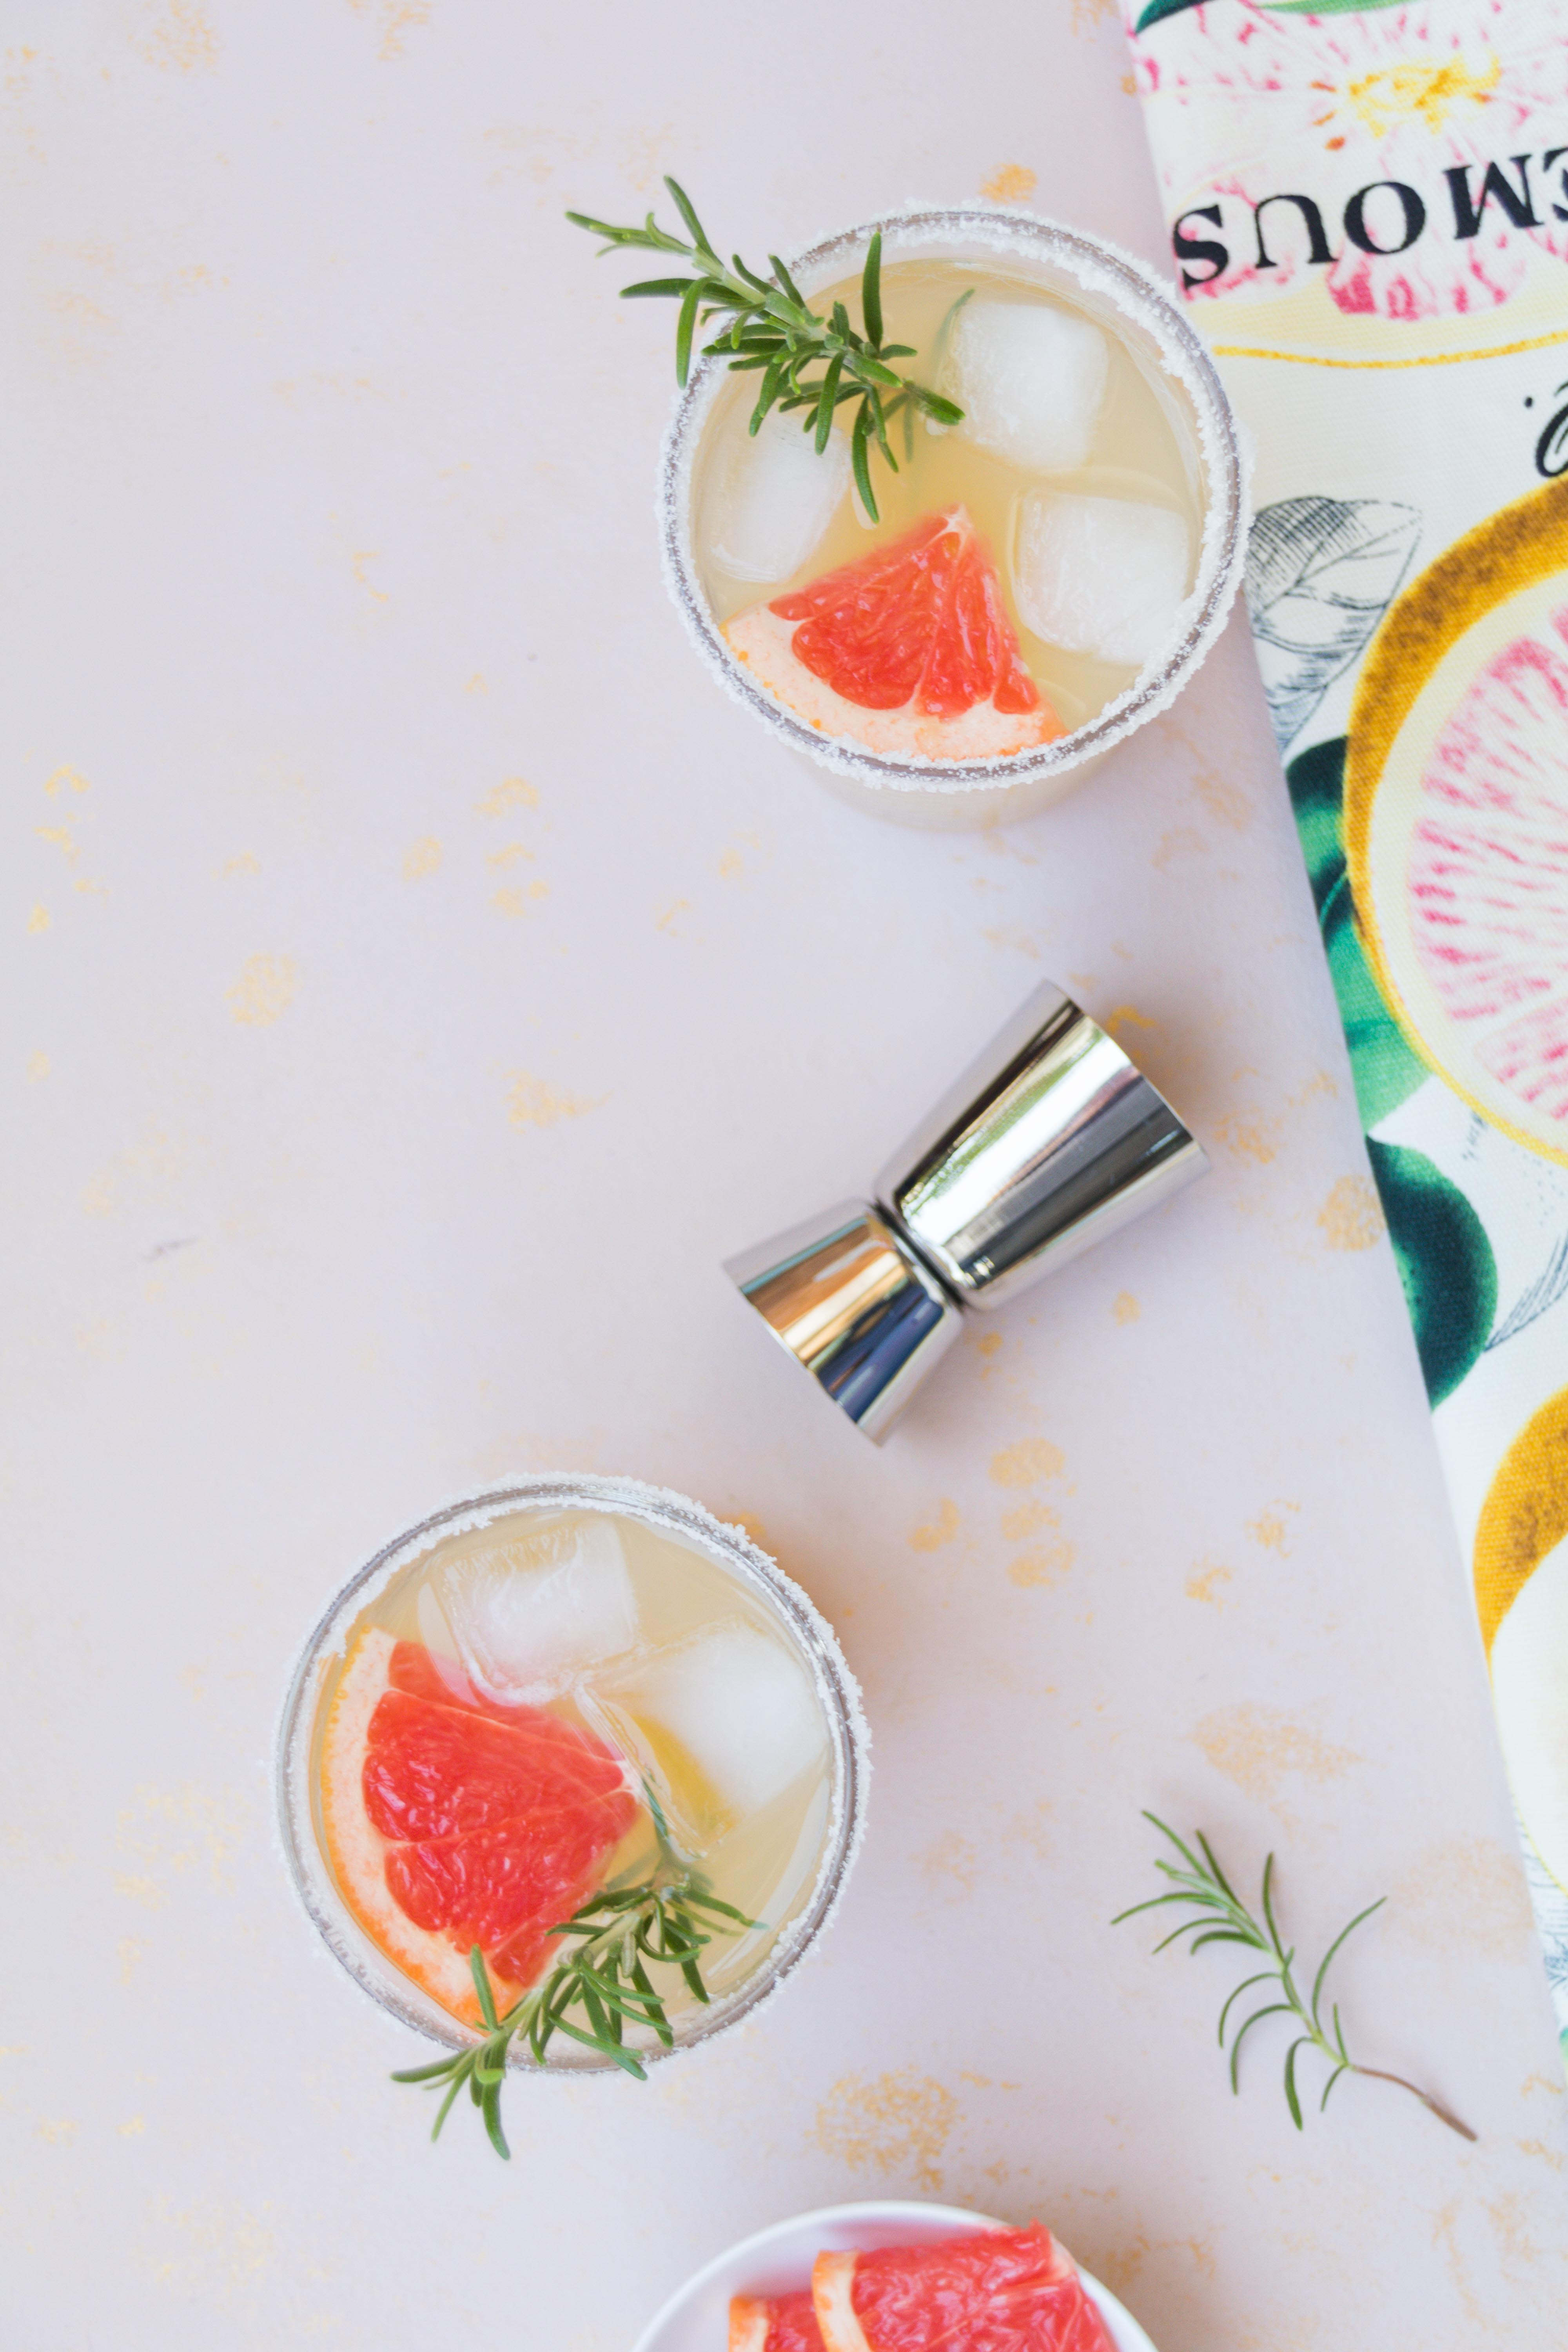 Ginger Rogers Cocktail mit Gin Ginger Rogers Cocktail mit Gin und Grapefruit // Ginger Rogers Cocktail with Gin and Grapefruit by http://babyrockmyday.com/ginger-rogers